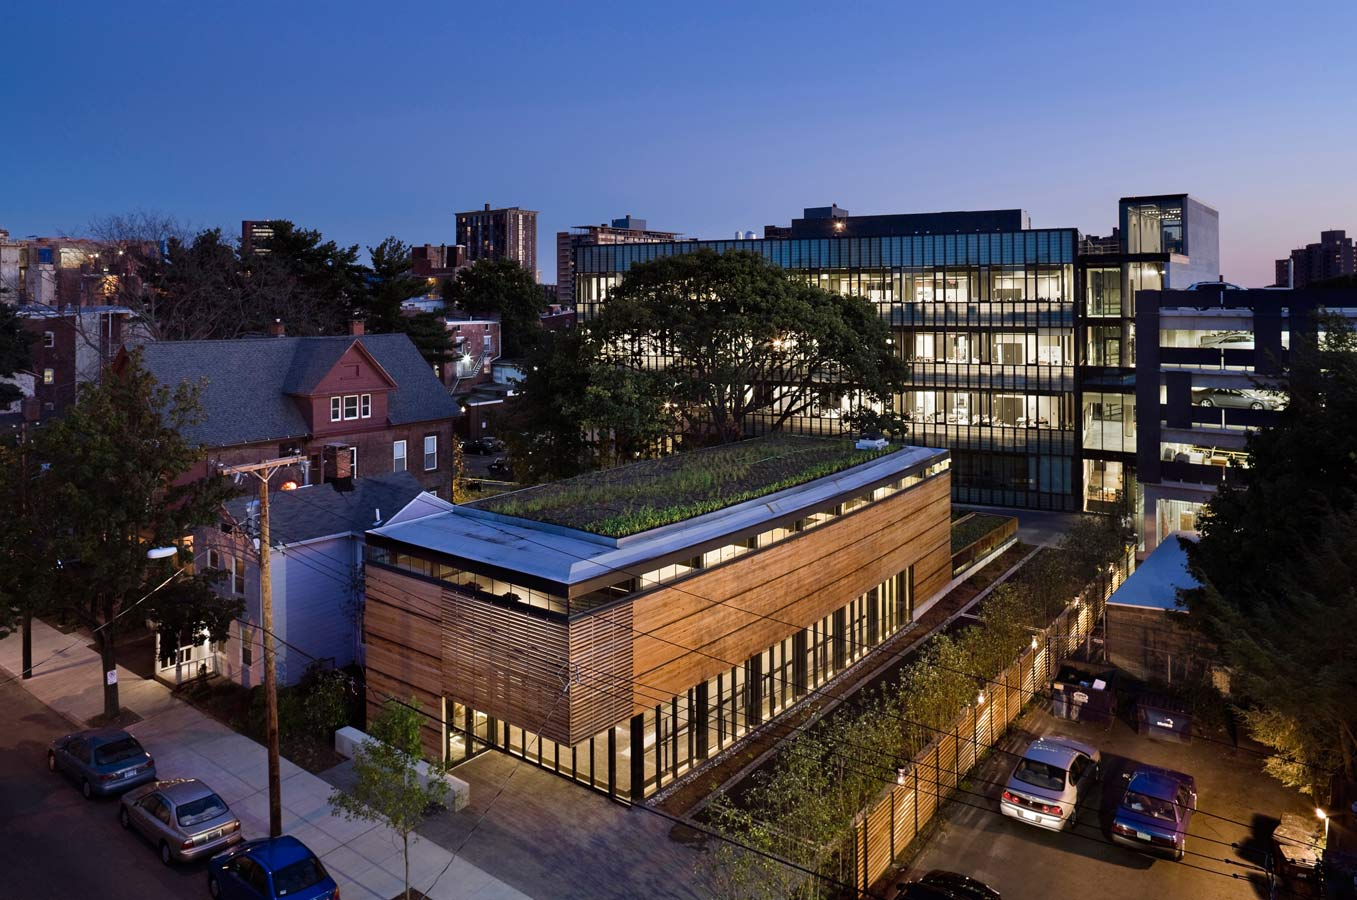 <p>New plantings and shade trees create a park-like setting on the former brownfield site. <br><small>© Peter Aaron/OTTO</small></p>